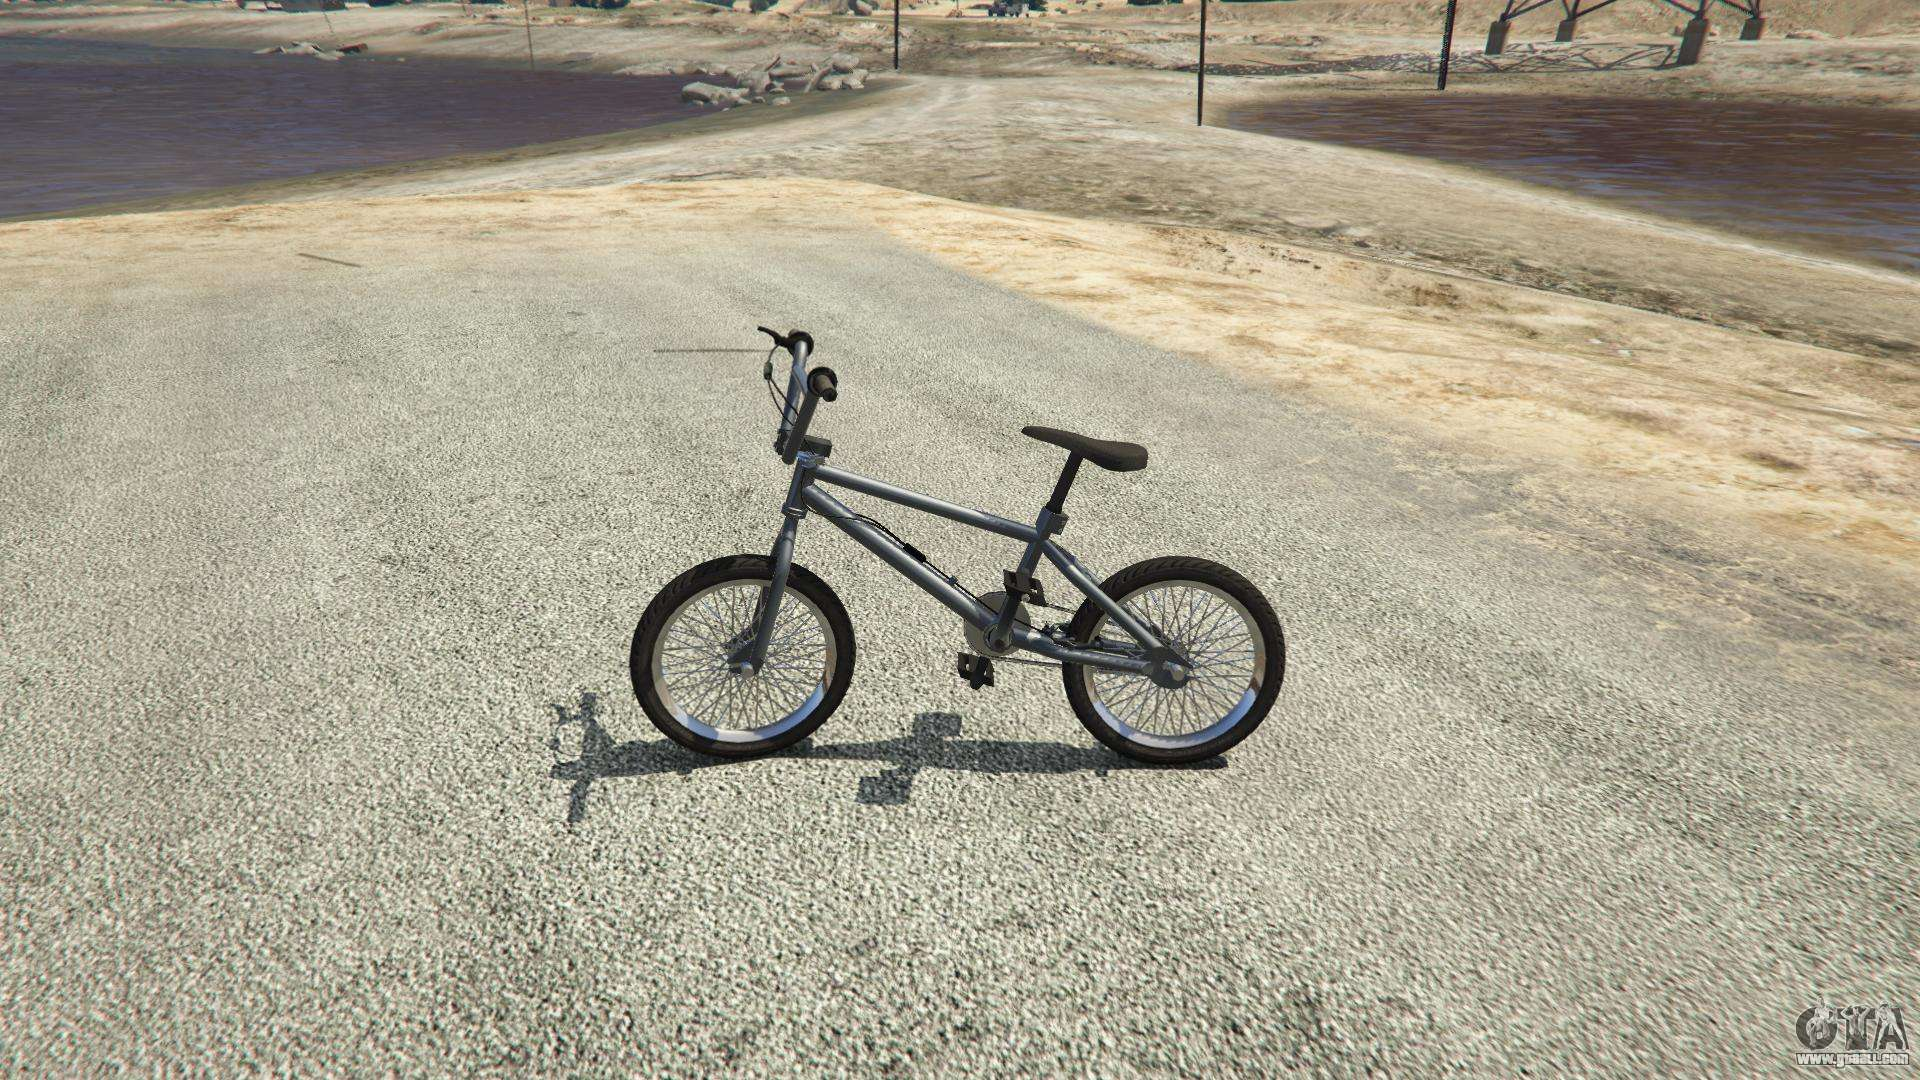 Bicycle Cheat Gta V Ps3 - Bicycling and the Best Bike Ideas